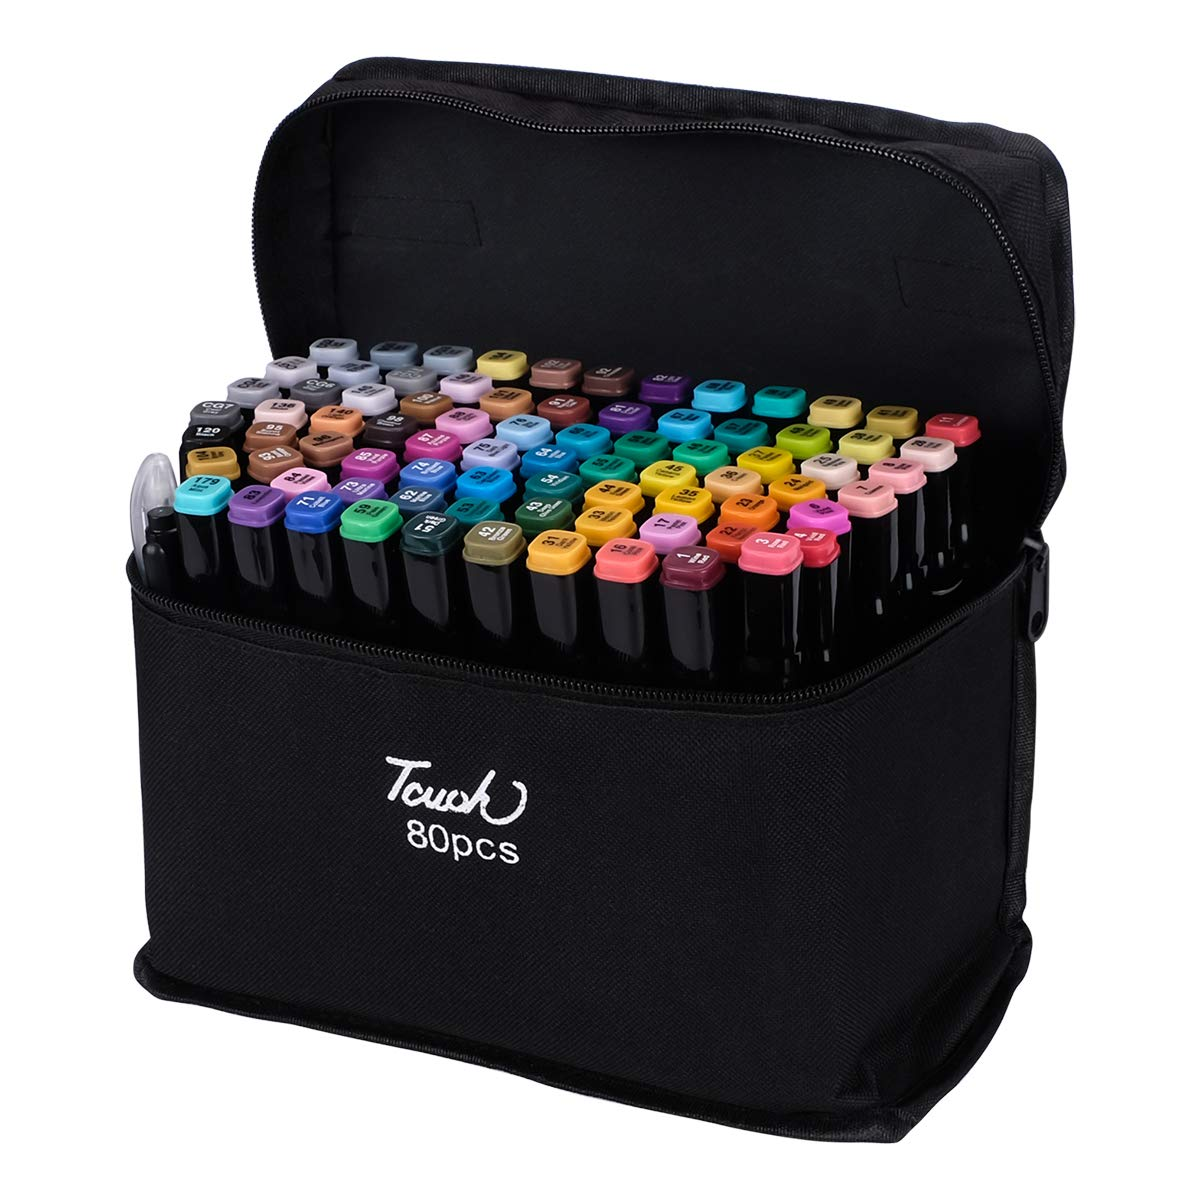 Chfine Art Marker Set - 40/60/80 Color Dual Tip Permanent Sketch Markers - Ideal for Artists Adults Kids Drawing Coloring Crafts Gifts-Color Card-Carry Case for Storage (80 Colors (Brighter))